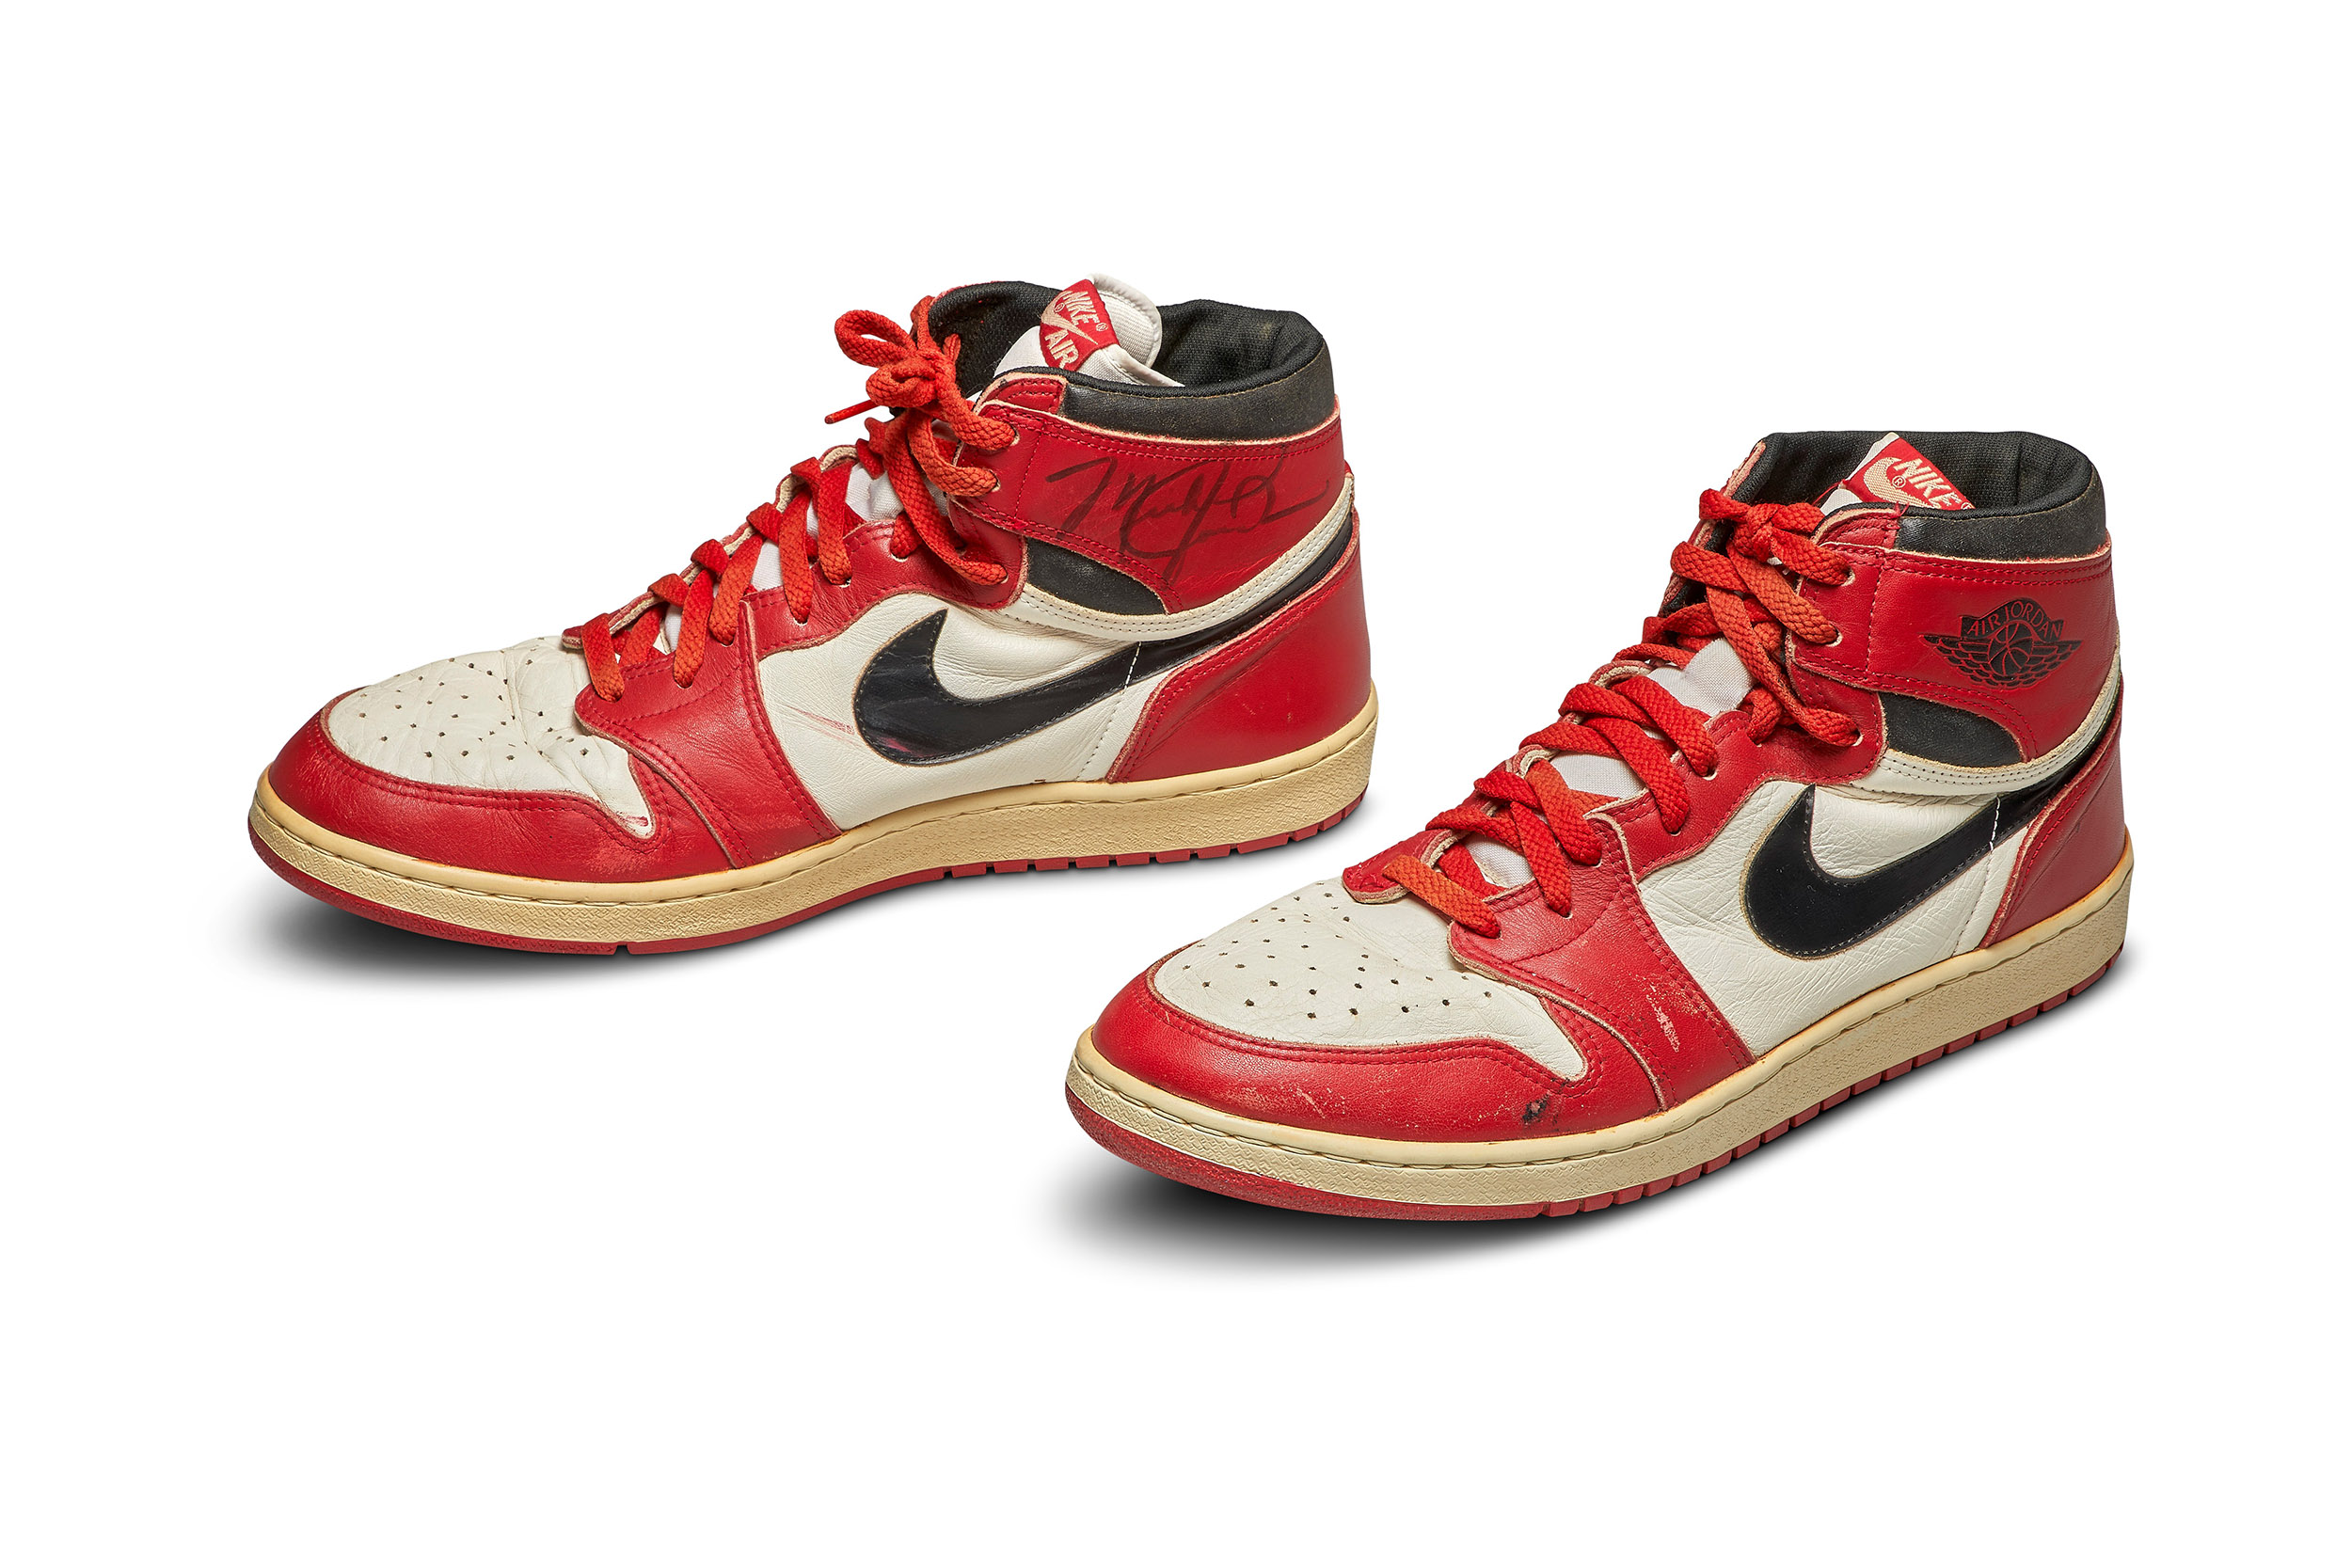 Michael Jordan sneakers sell for $560,000 at Sotheby's auction